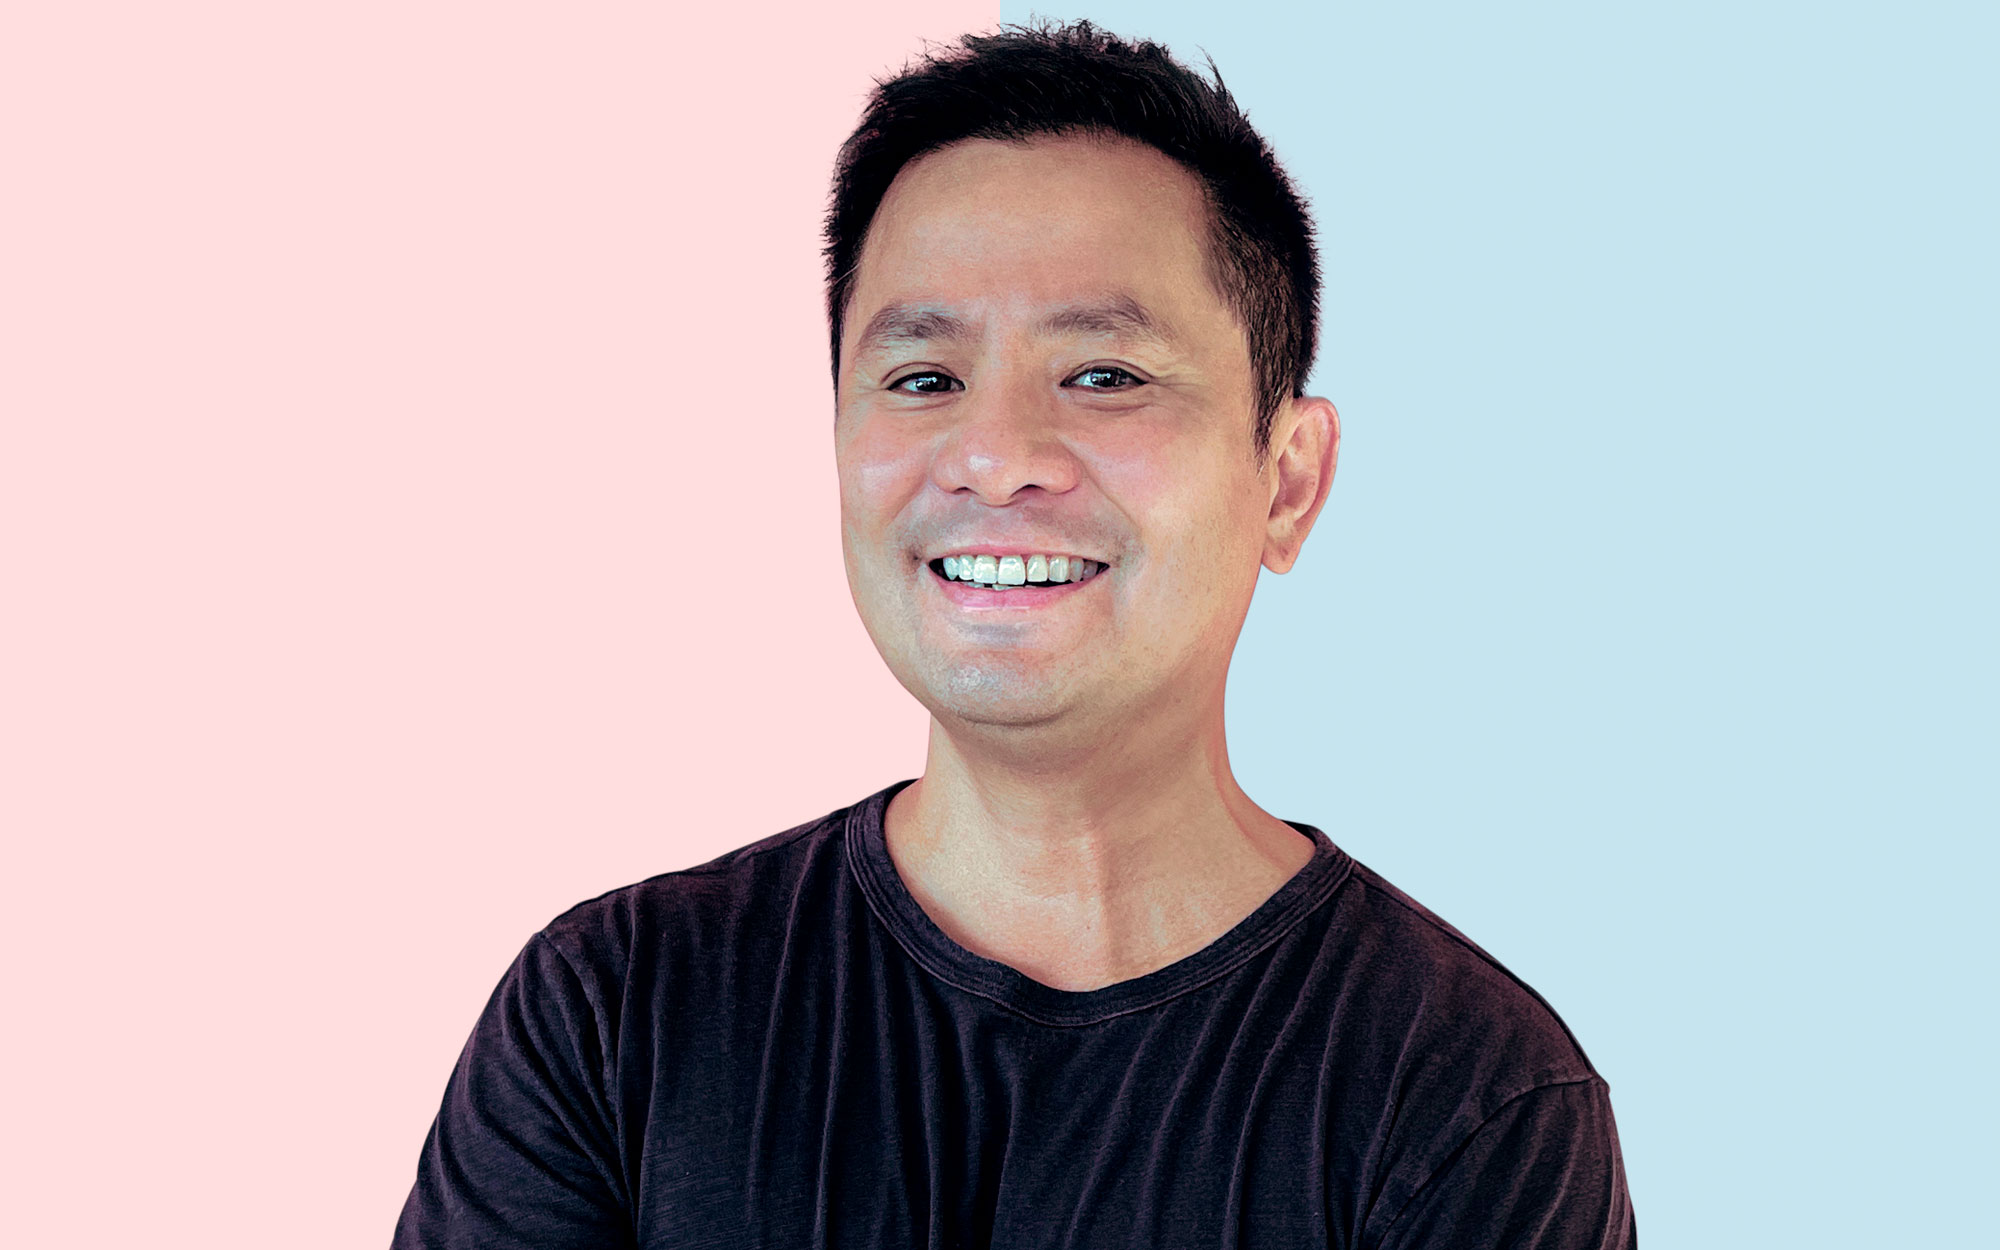 Taking A Cue From His Dad, Ogie Alcasid Wants To Be His Kids' Biggest Fan